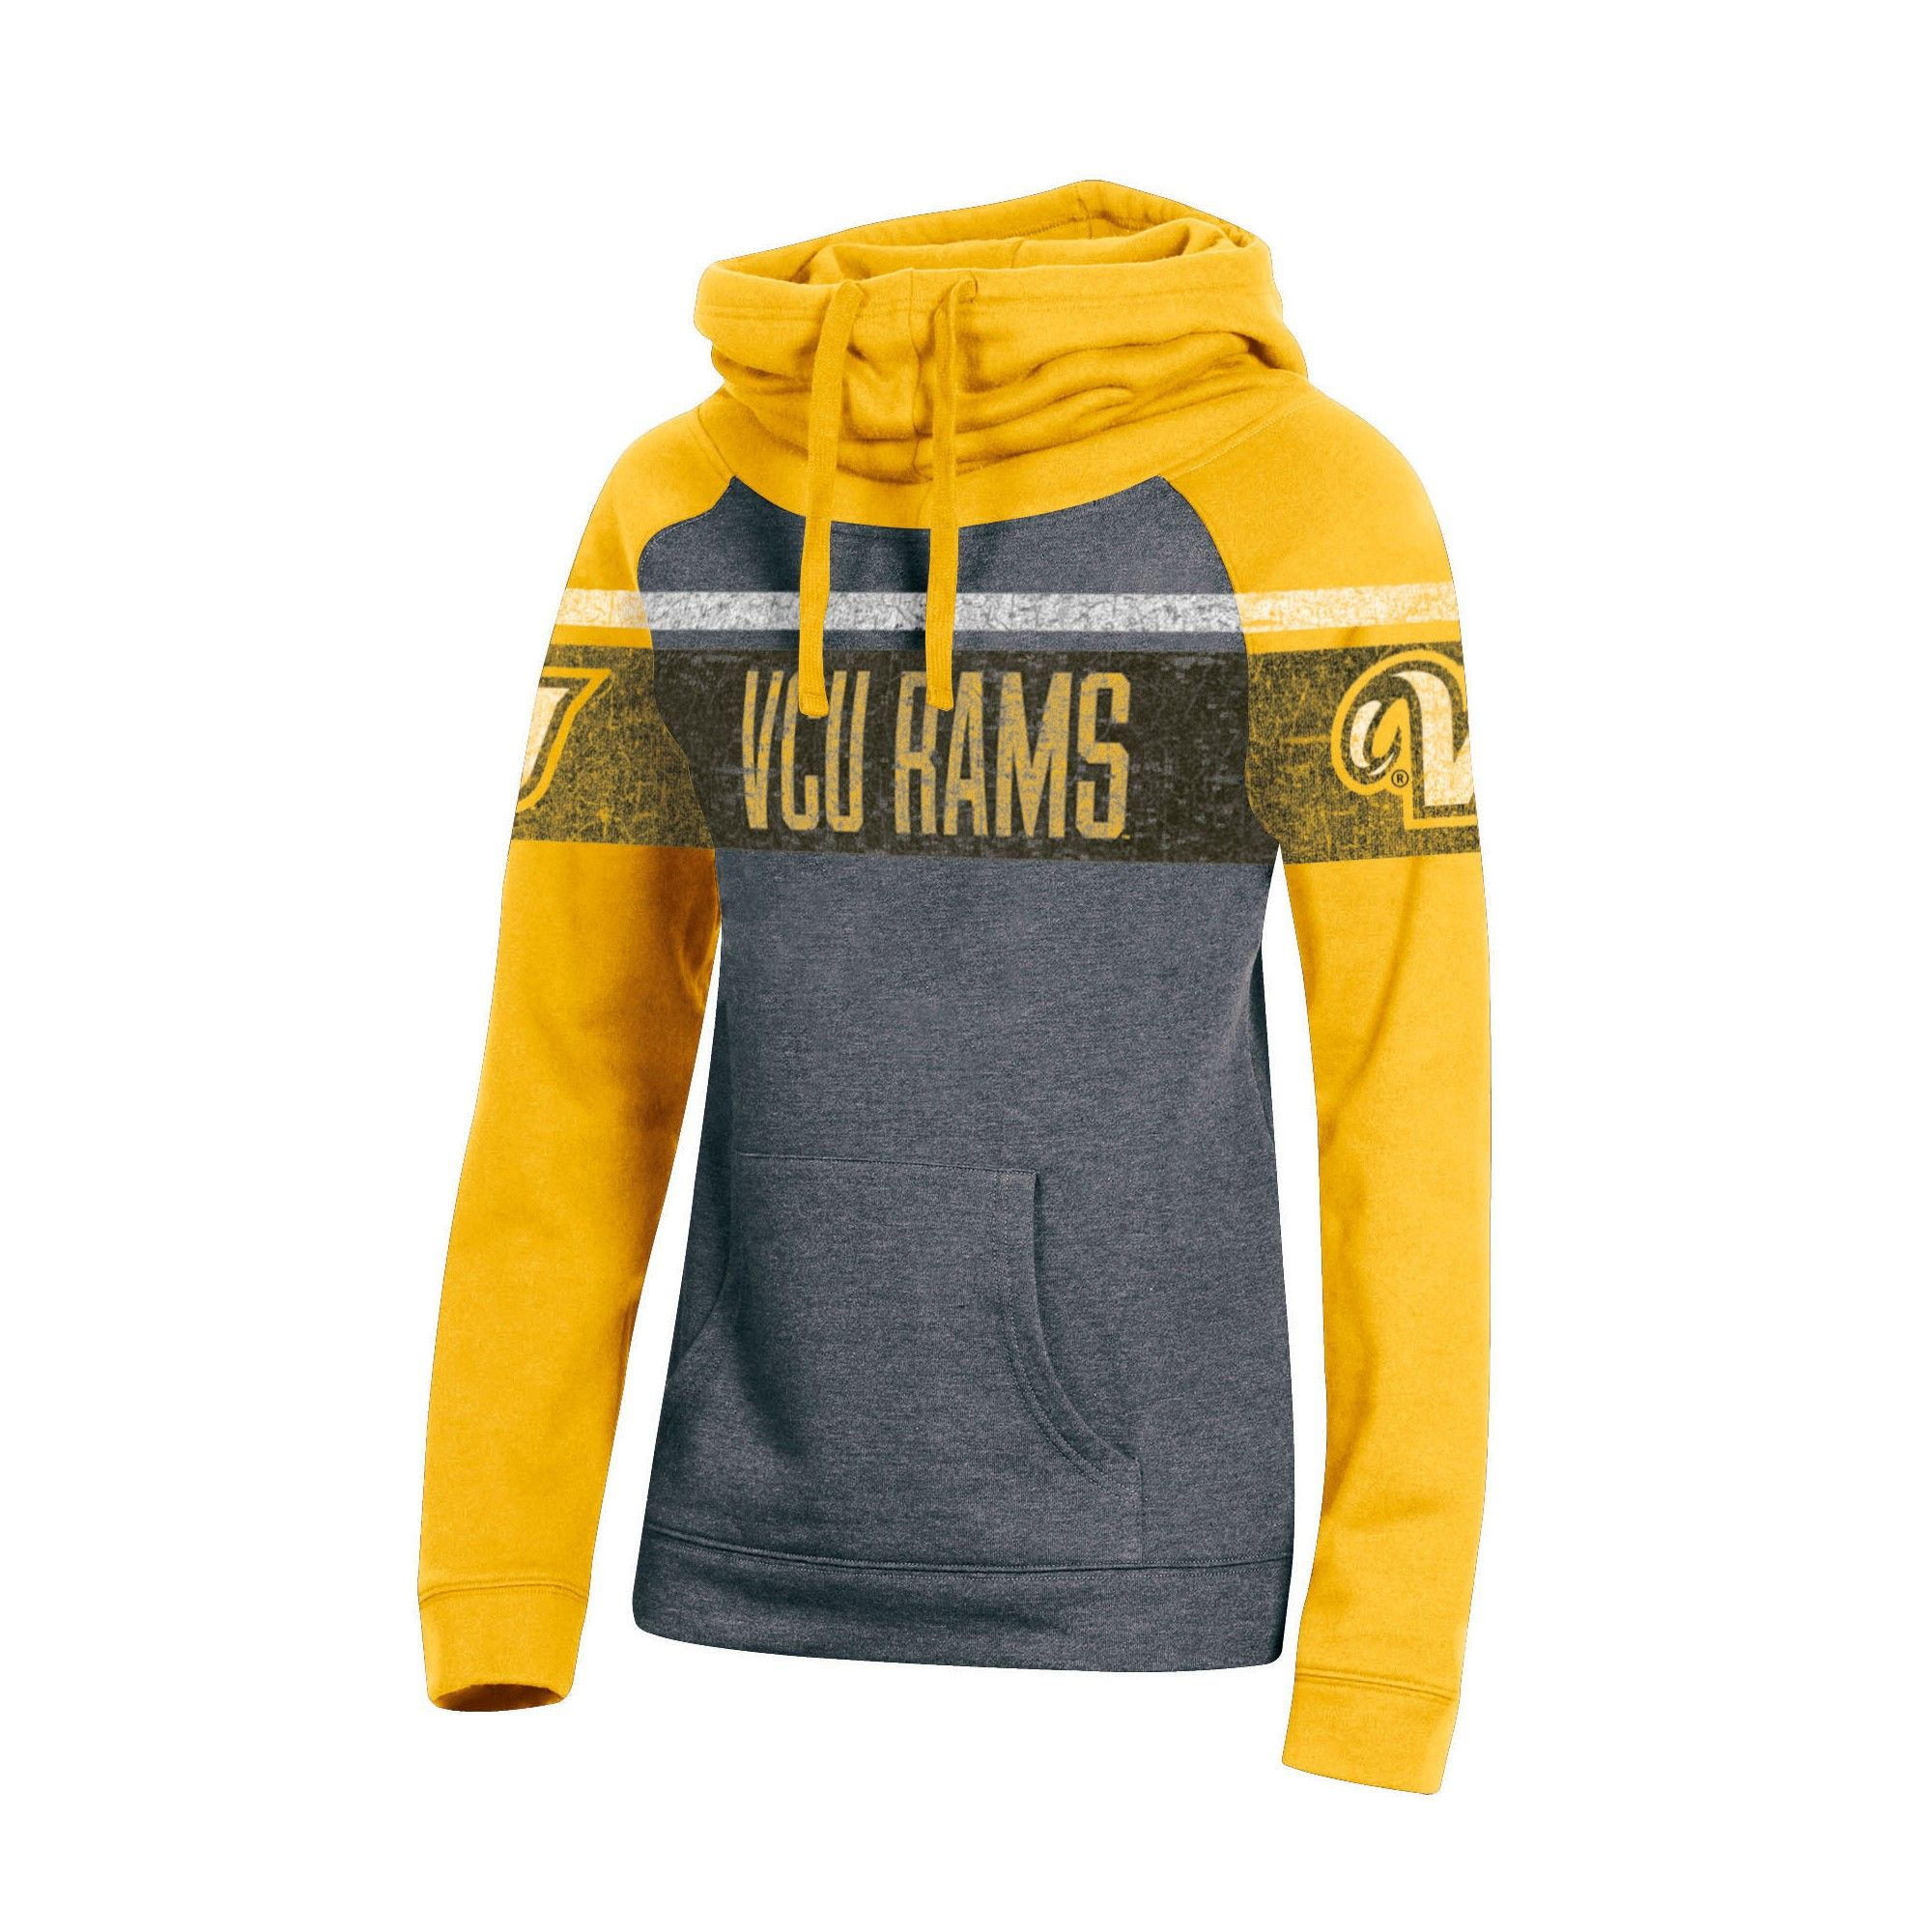 83f16b6d Vcu Rams Women's Cowl Neck Hoodie - XL, Multicolored | Products ...